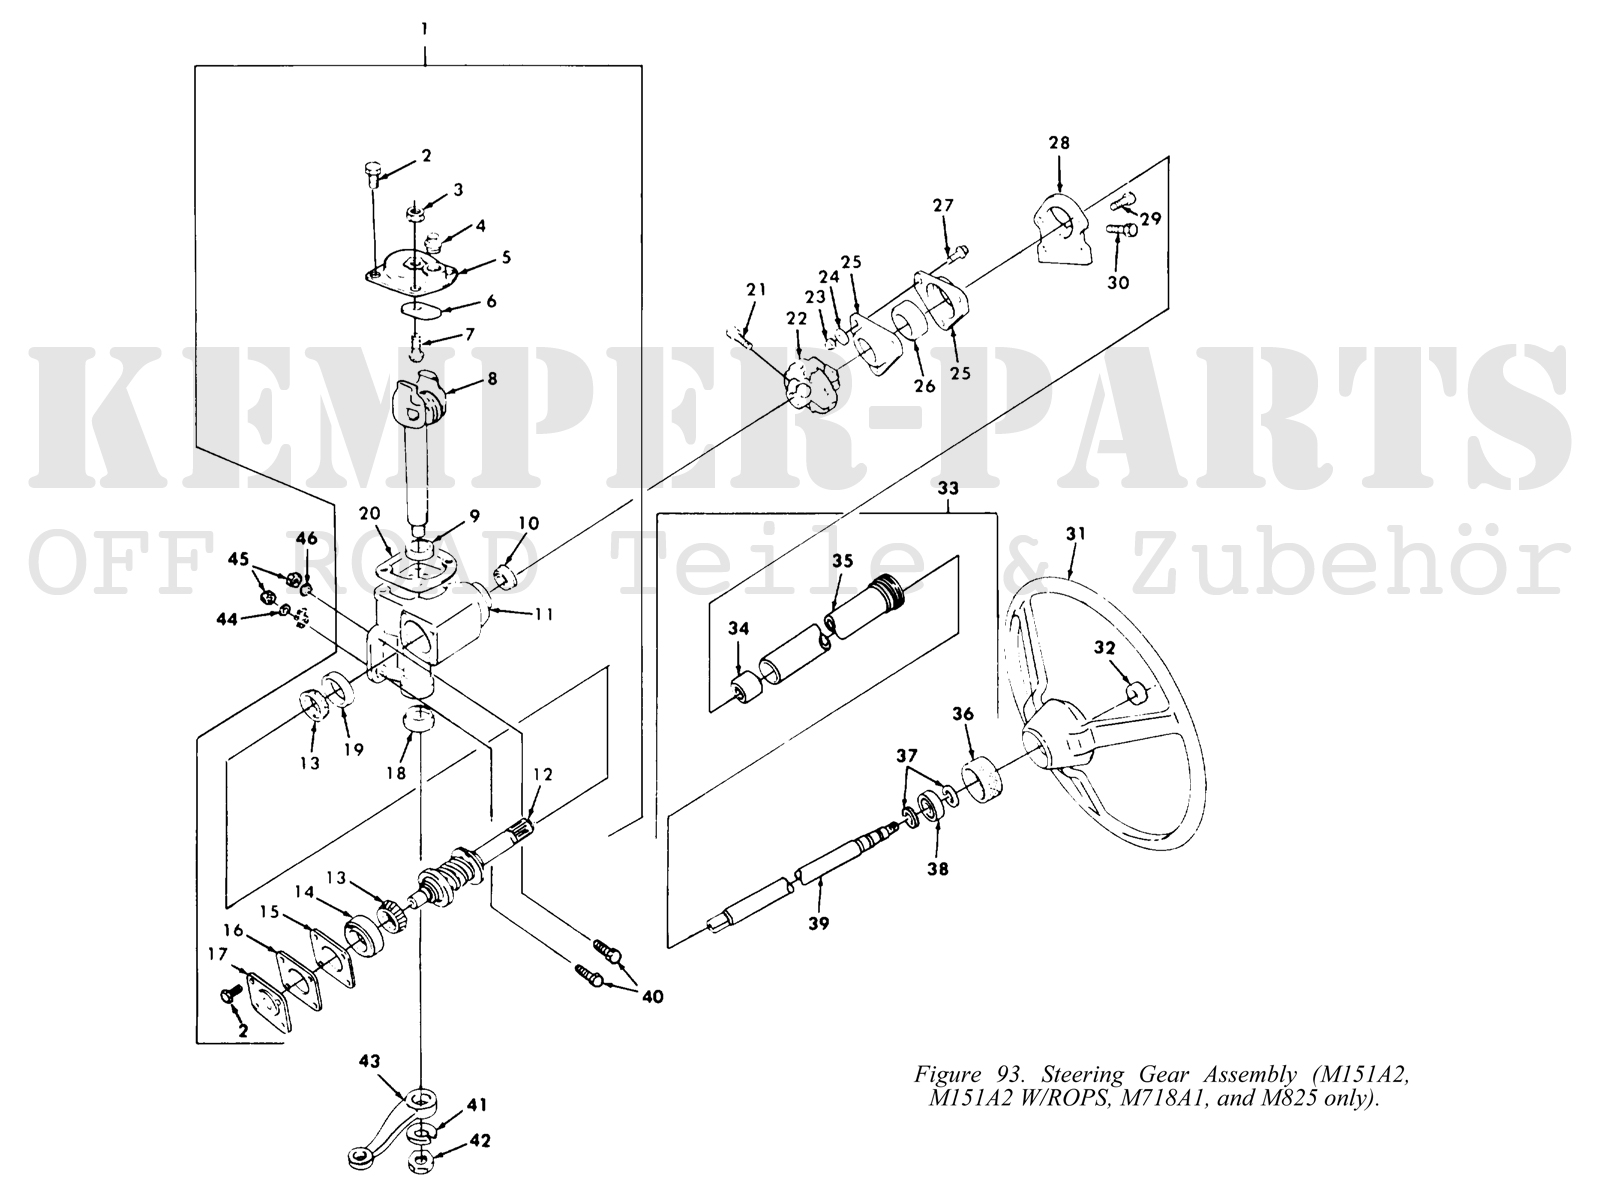 M151a2 Diagramsa Wire Diagrams M151a1 Wiring Diagram Ford Mutt M151 A2 Steering Gear Kemper Parts 25